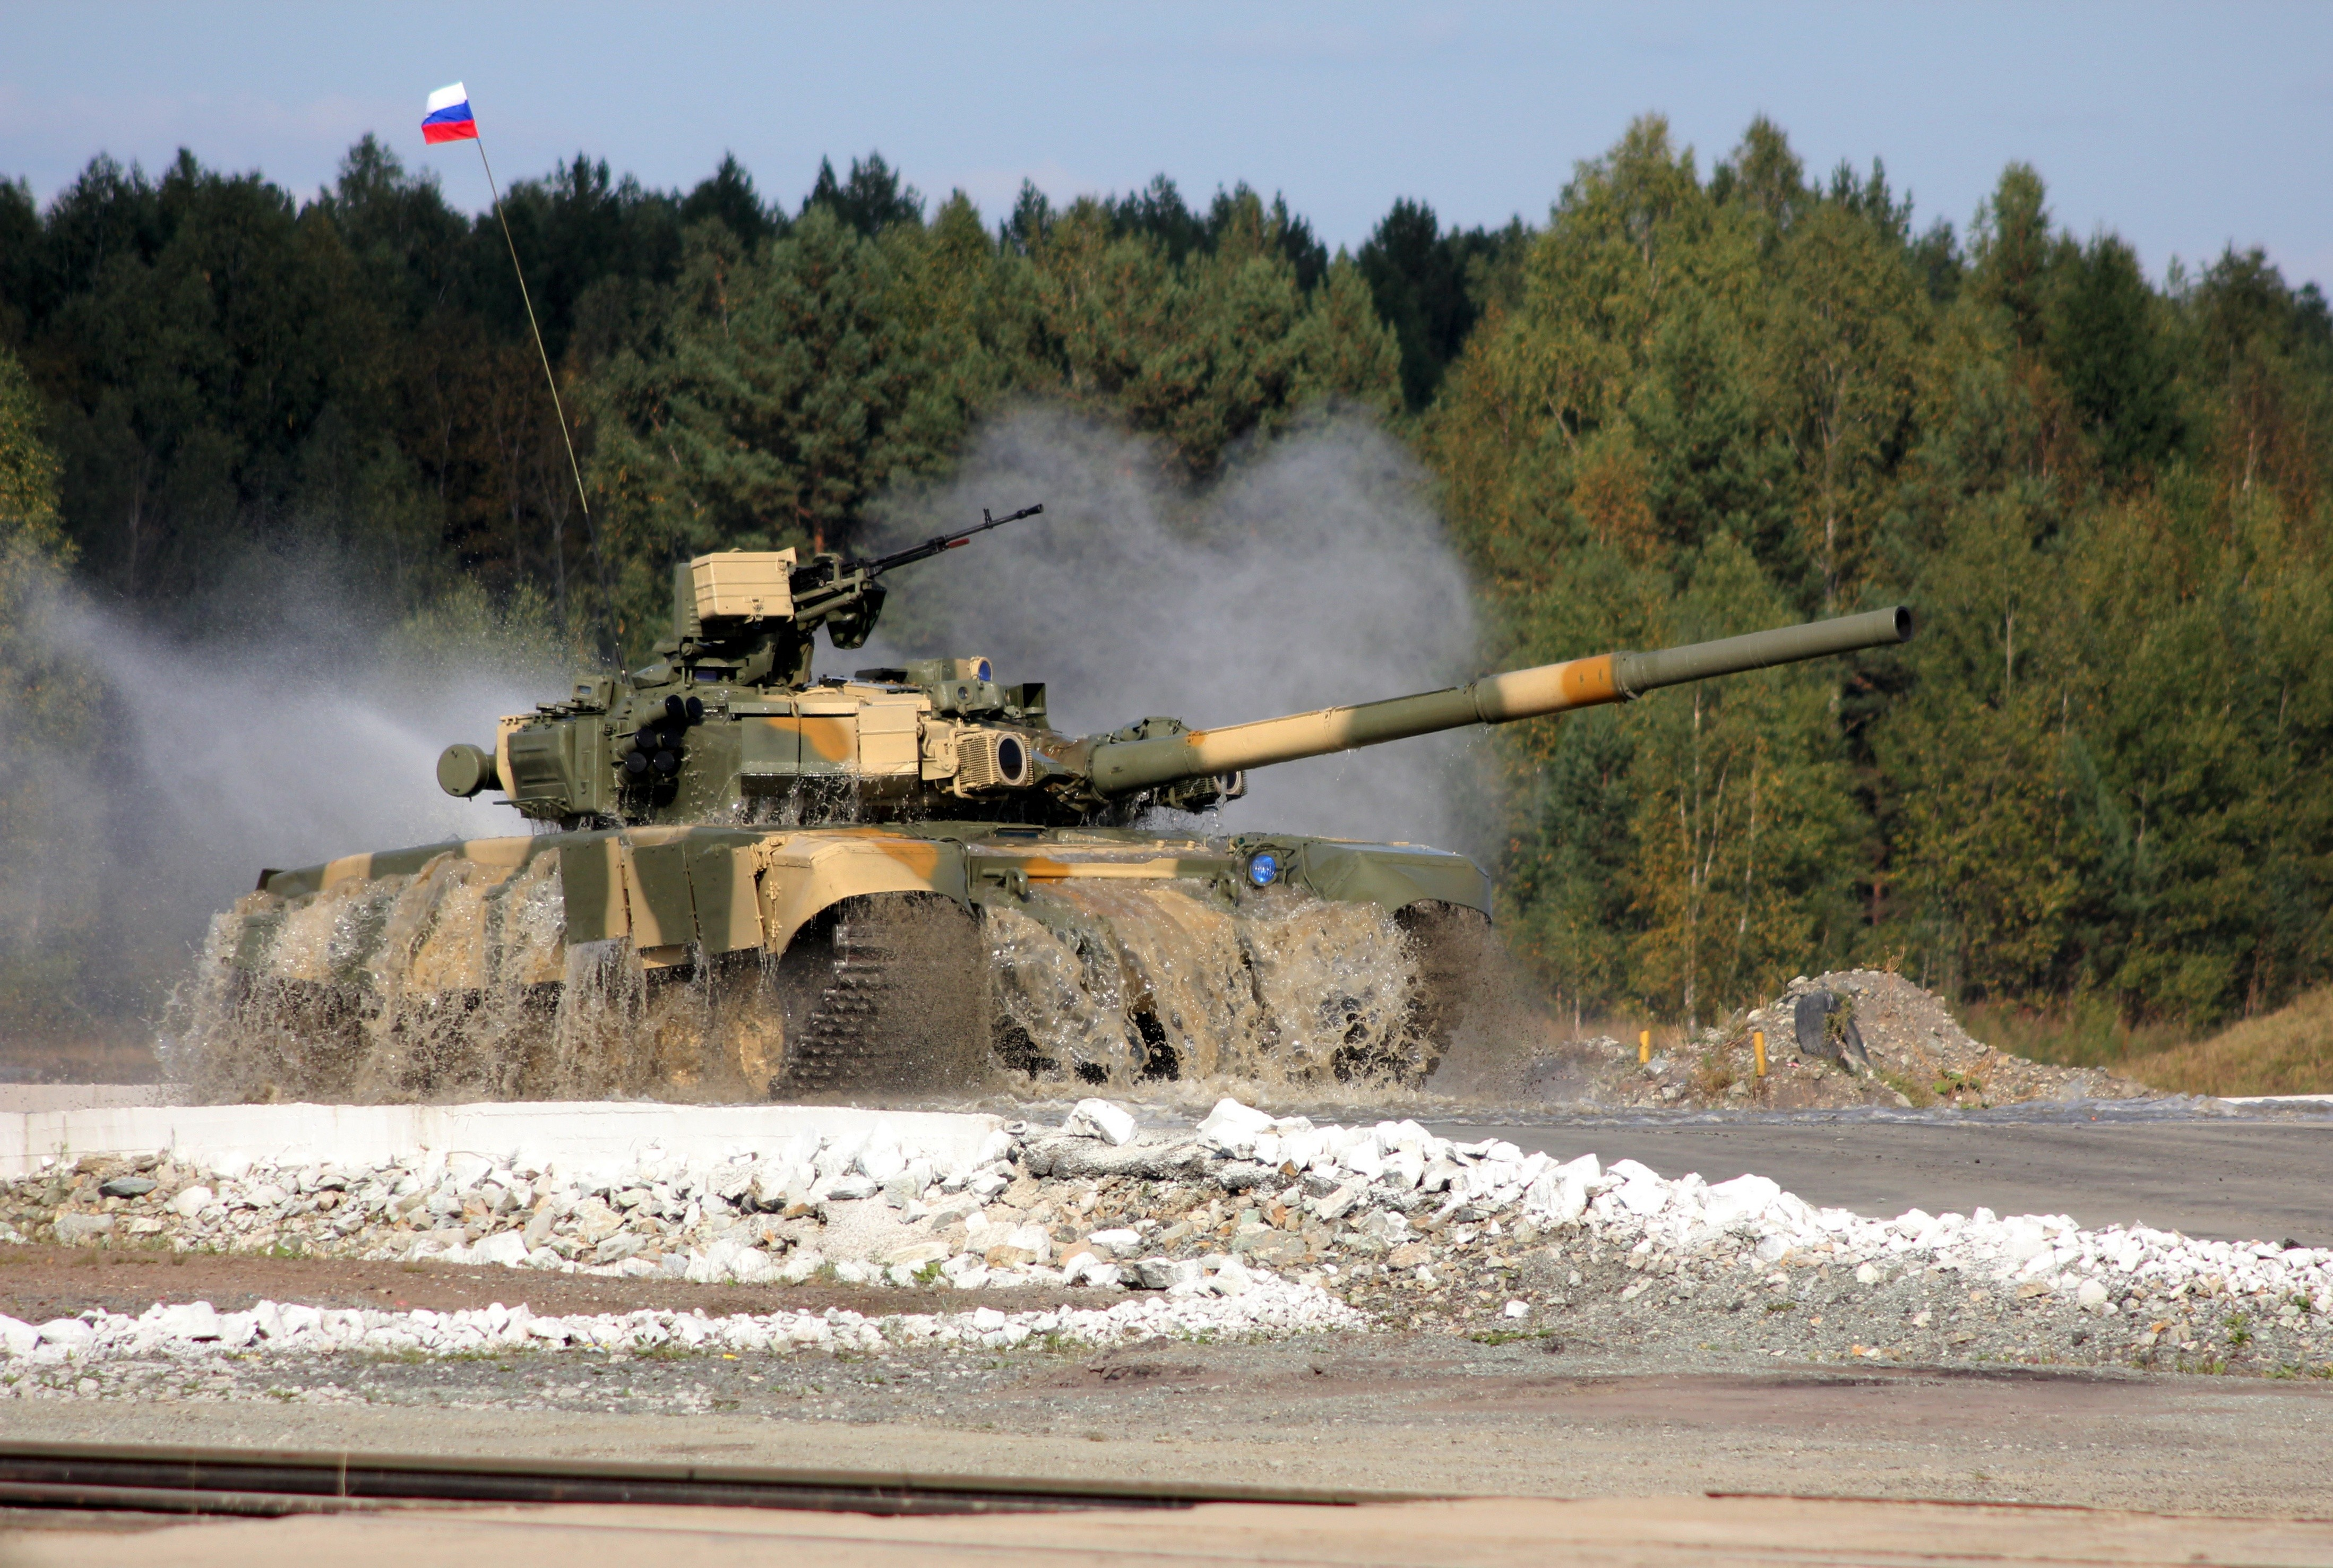 Soldier Girls Wallpapers Wallpaper T 90a Tank Mbt Third Generation Russian Army